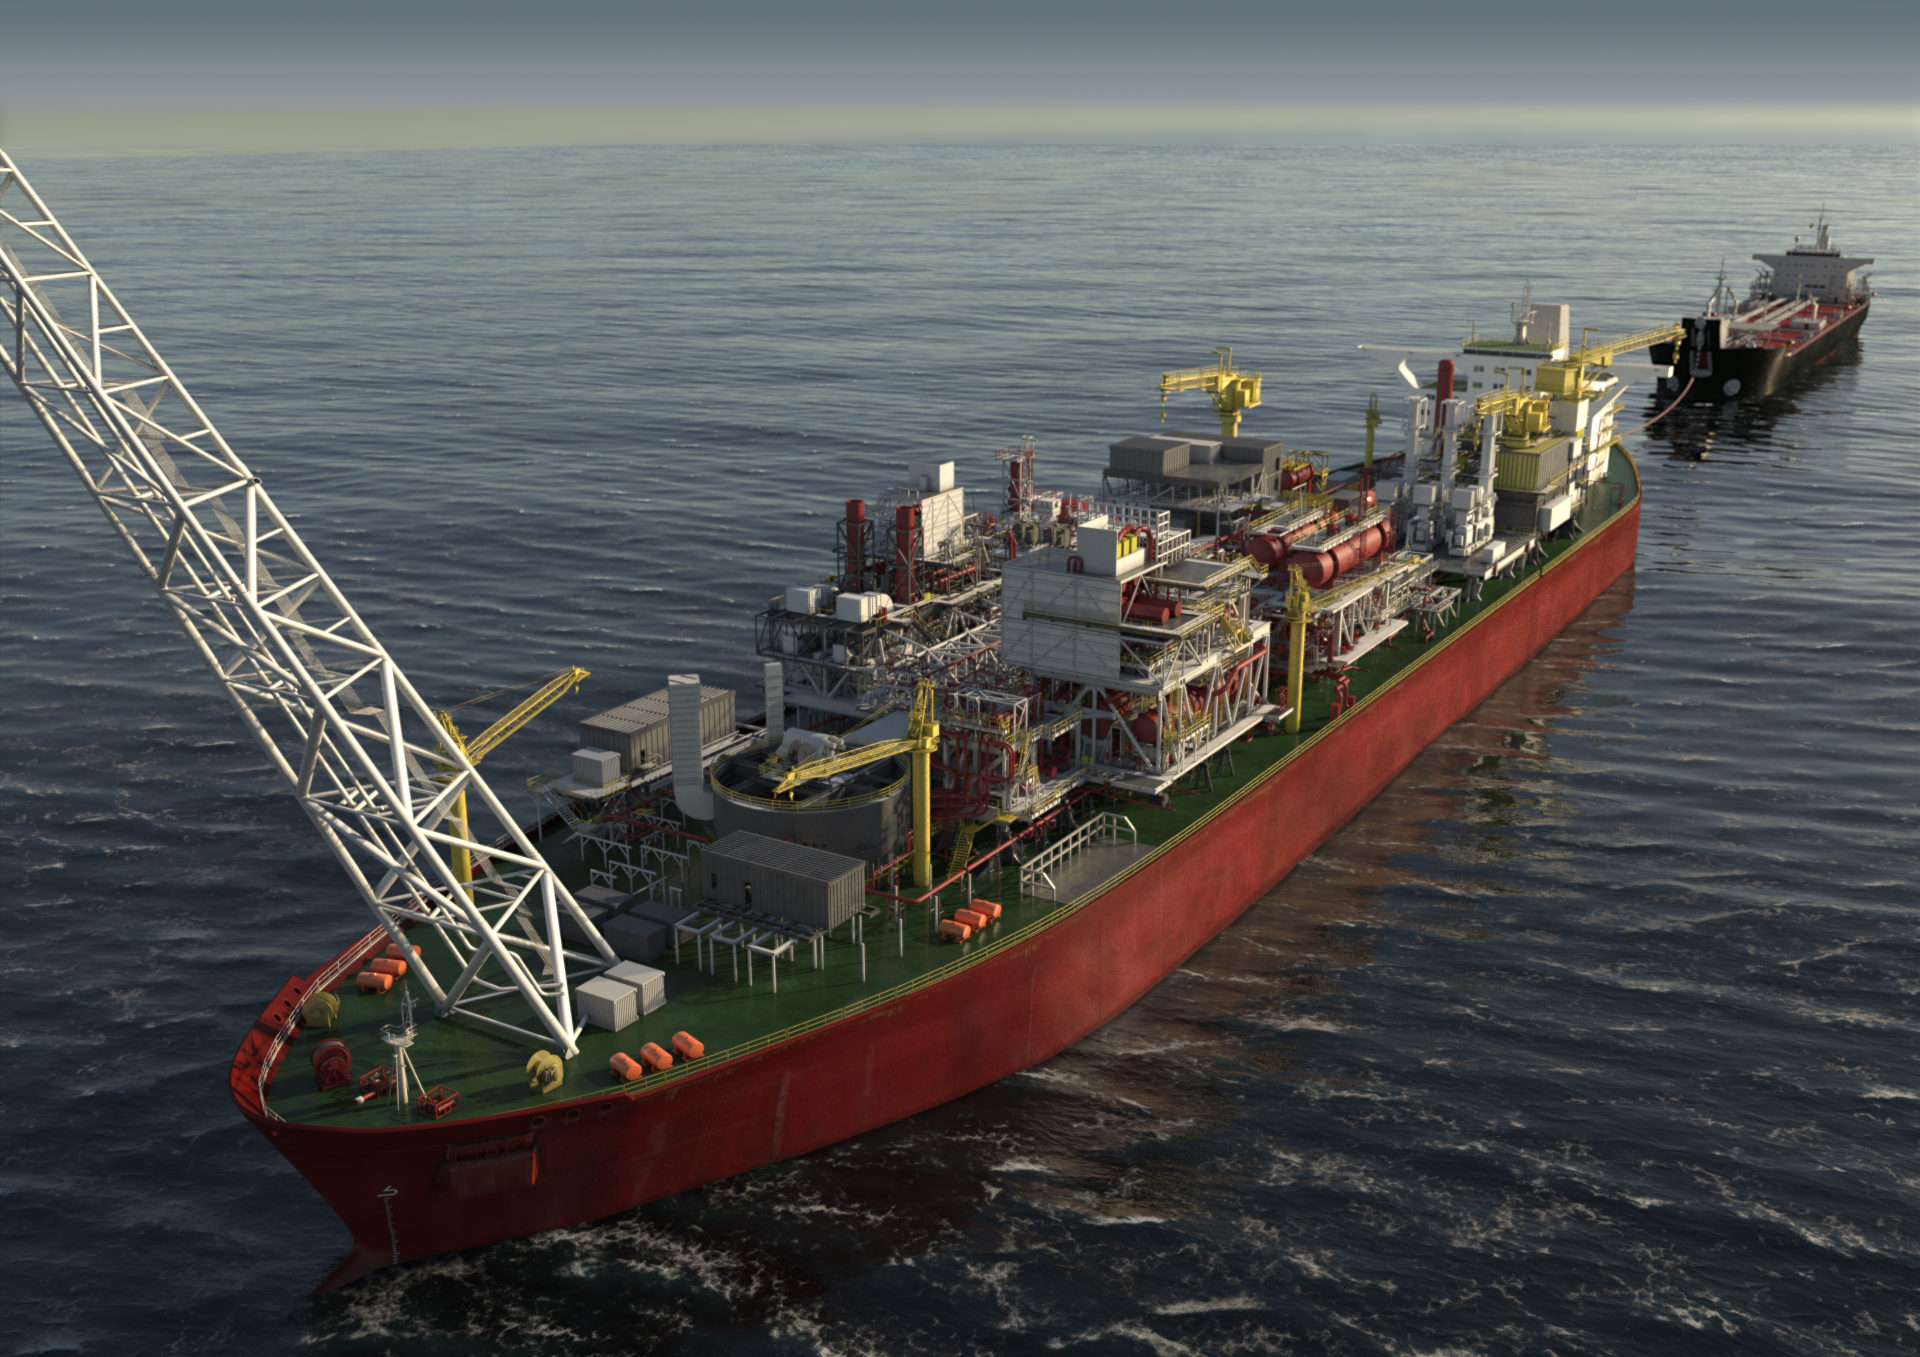 A concept of how the SNE field FPSO will look. Pic from Woodside Energy